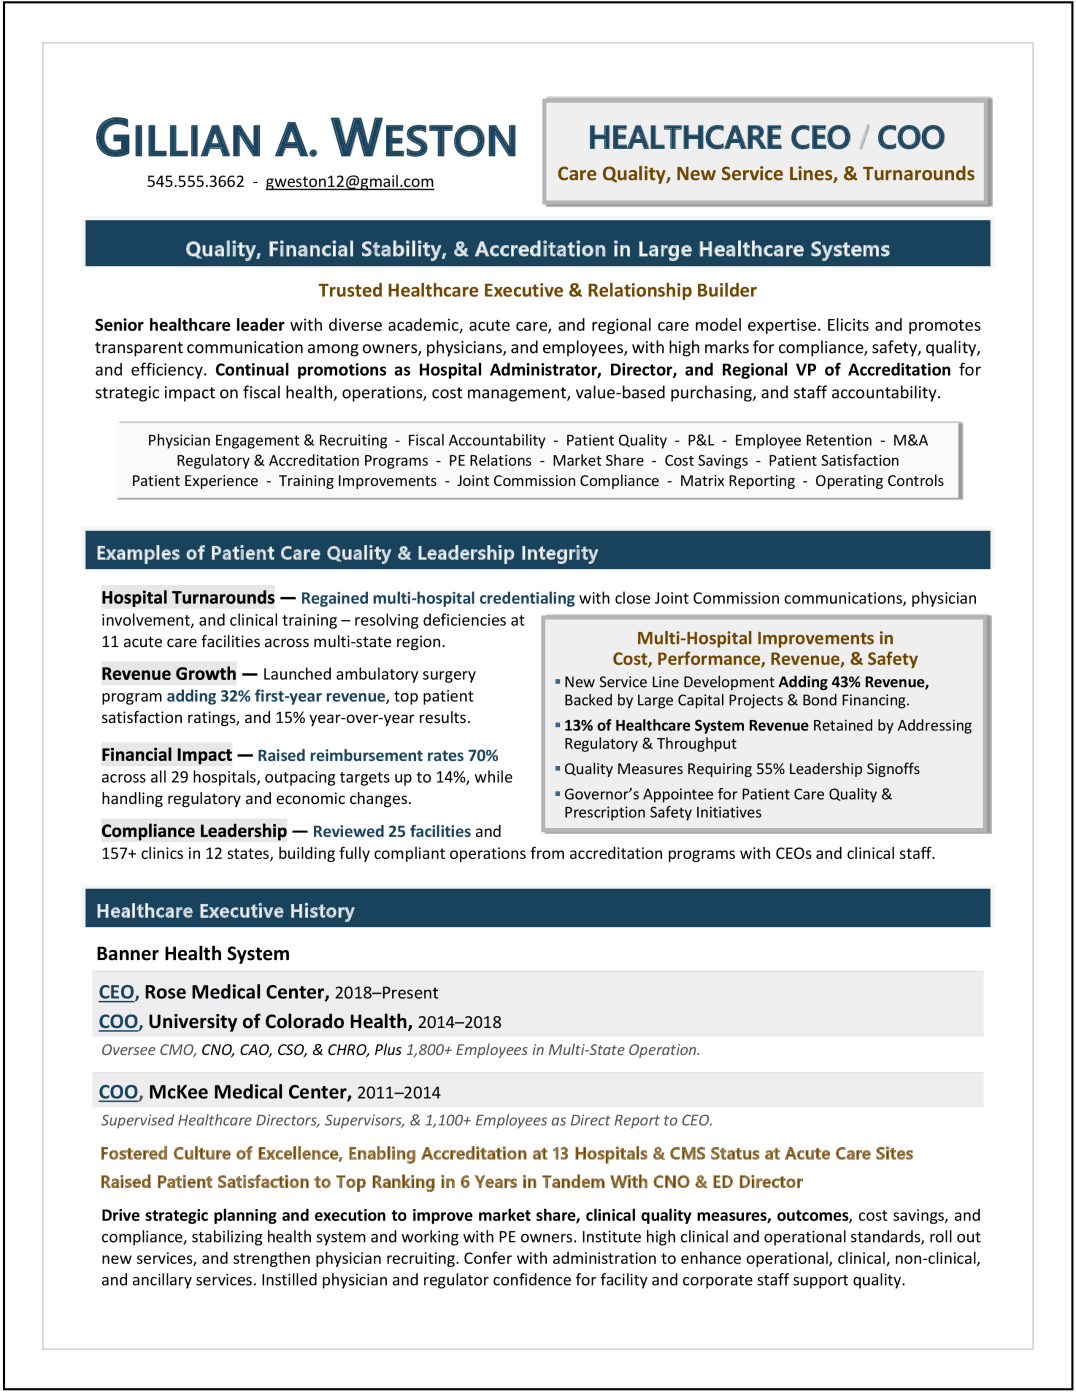 CEO and COO resume sample by Laura Smith-Proulx